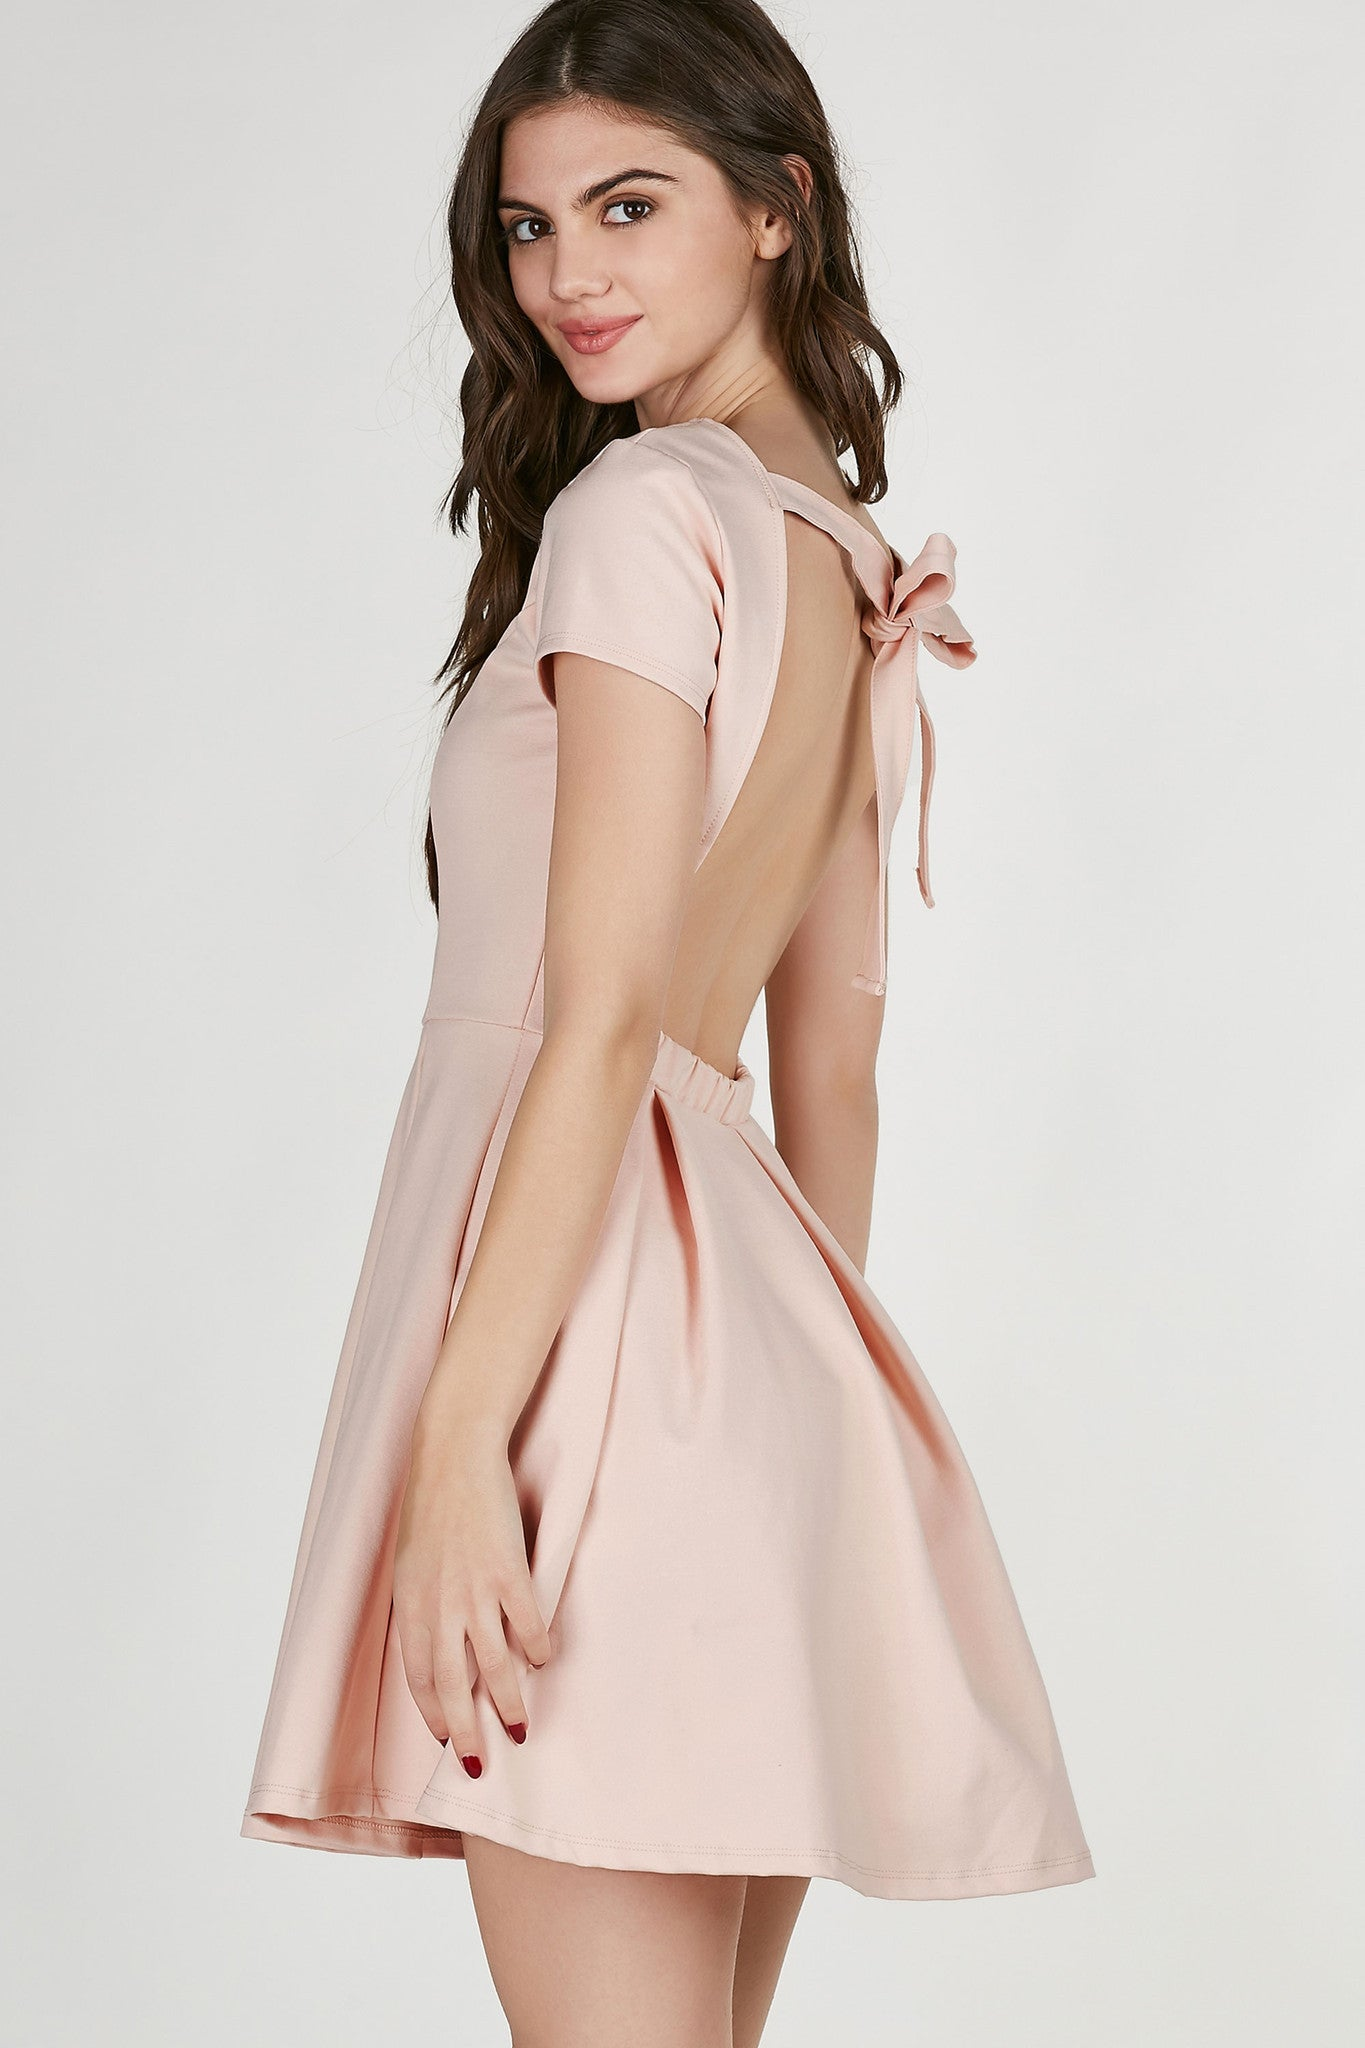 Round neck short sleeve dress with open back and tie for closure. Bold pleating at waist with A-line hem.